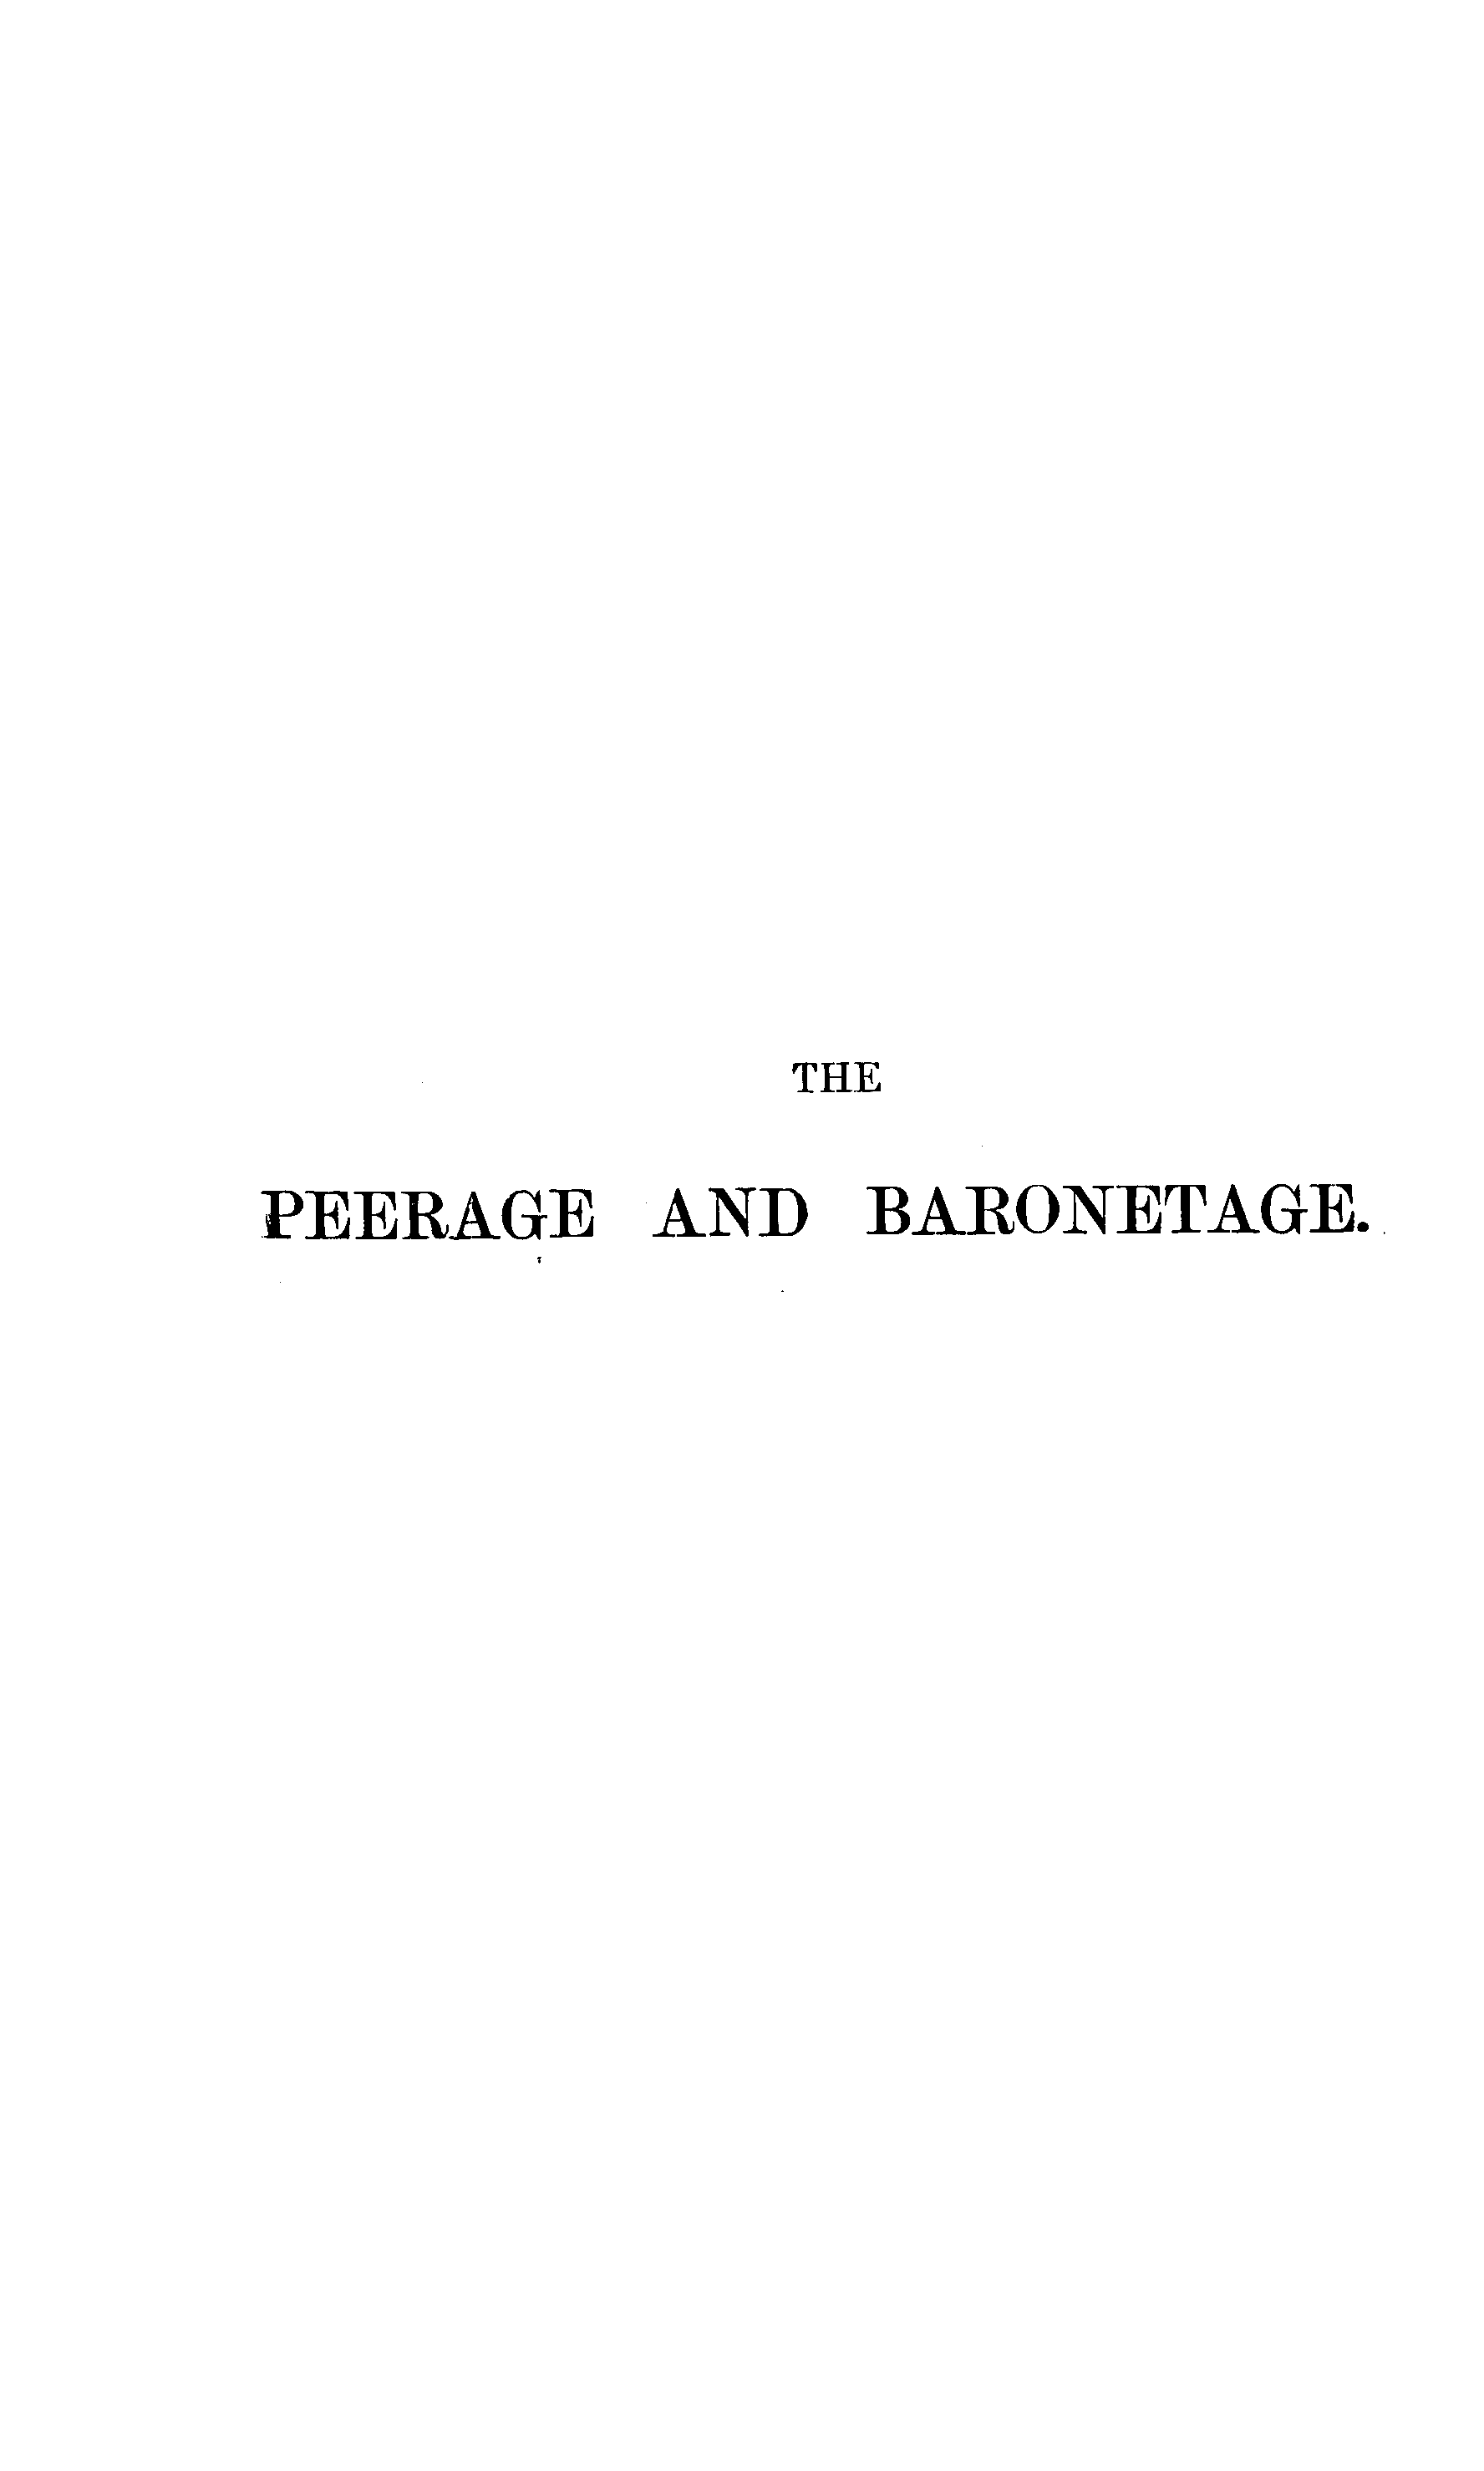 Burke's Peerage, Baronetage, and Knightage 1899 page cover - click to open larger version in a new window